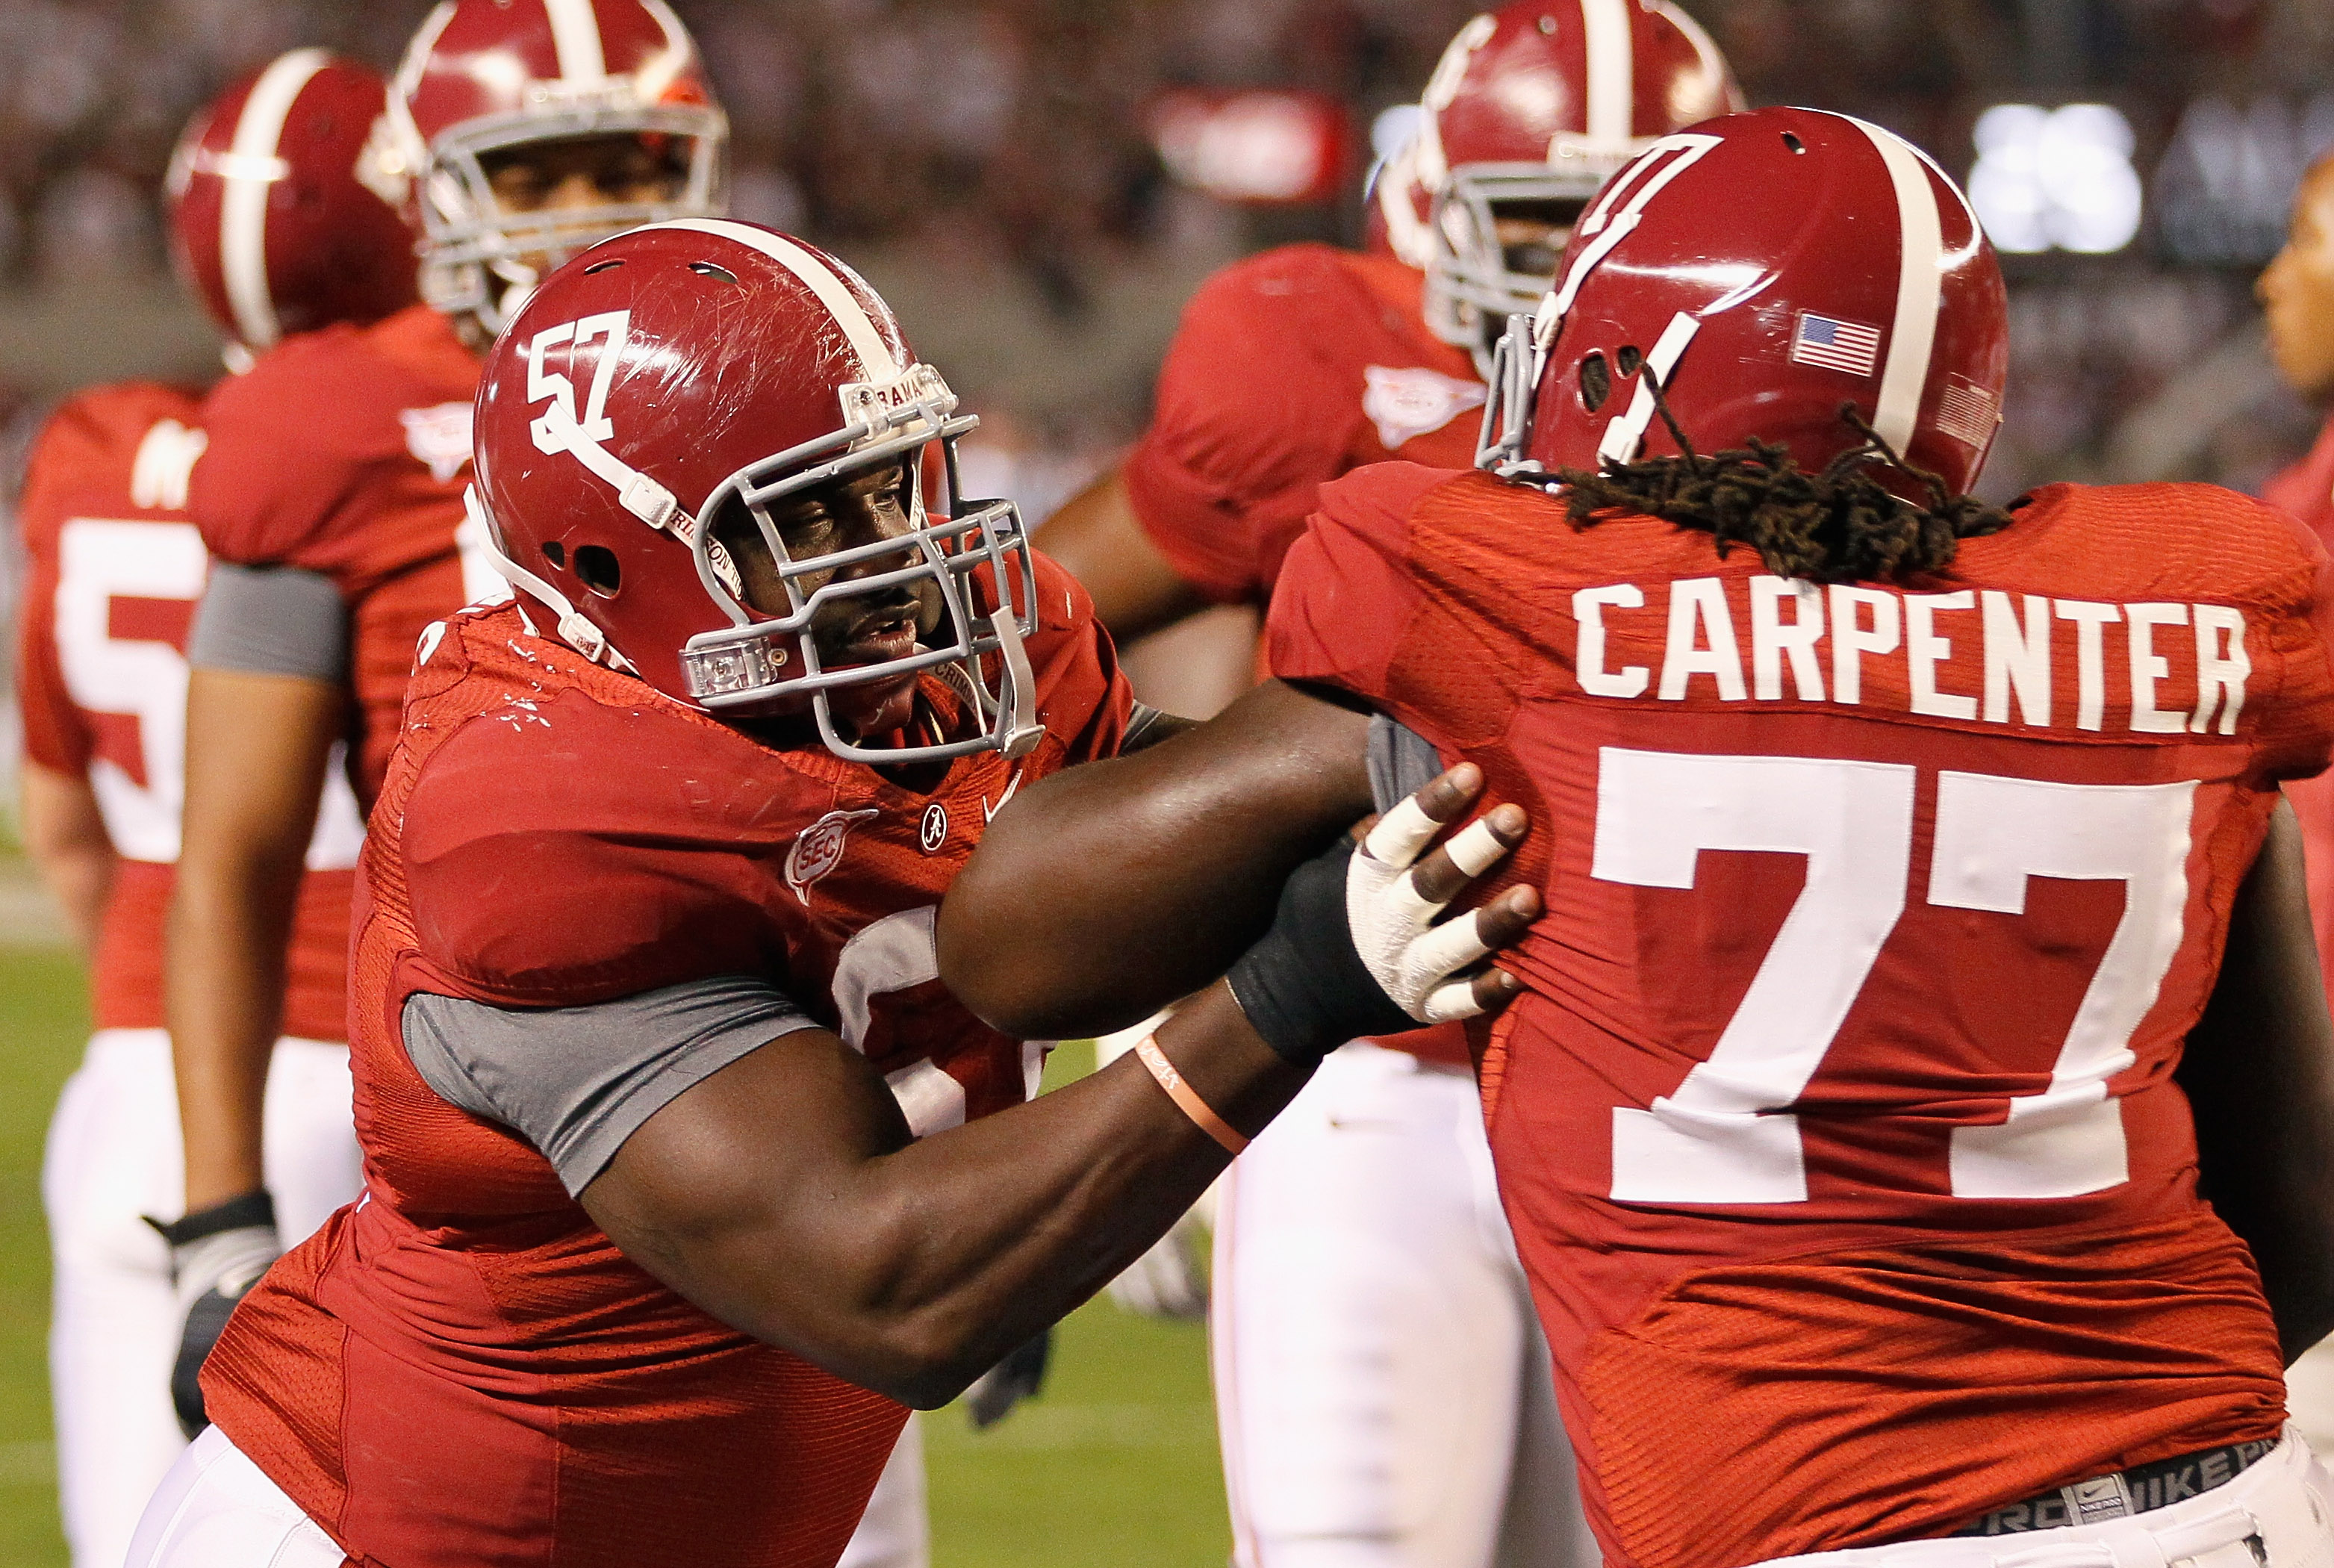 TUSCALOOSA, AL - OCTOBER 16:  Marcell Dareus #57 and James Carpenter #77 of the Alabama Crimson Tide against the Ole Miss Rebels at Bryant-Denny Stadium on October 16, 2010 in Tuscaloosa, Alabama.  (Photo by Kevin C. Cox/Getty Images)